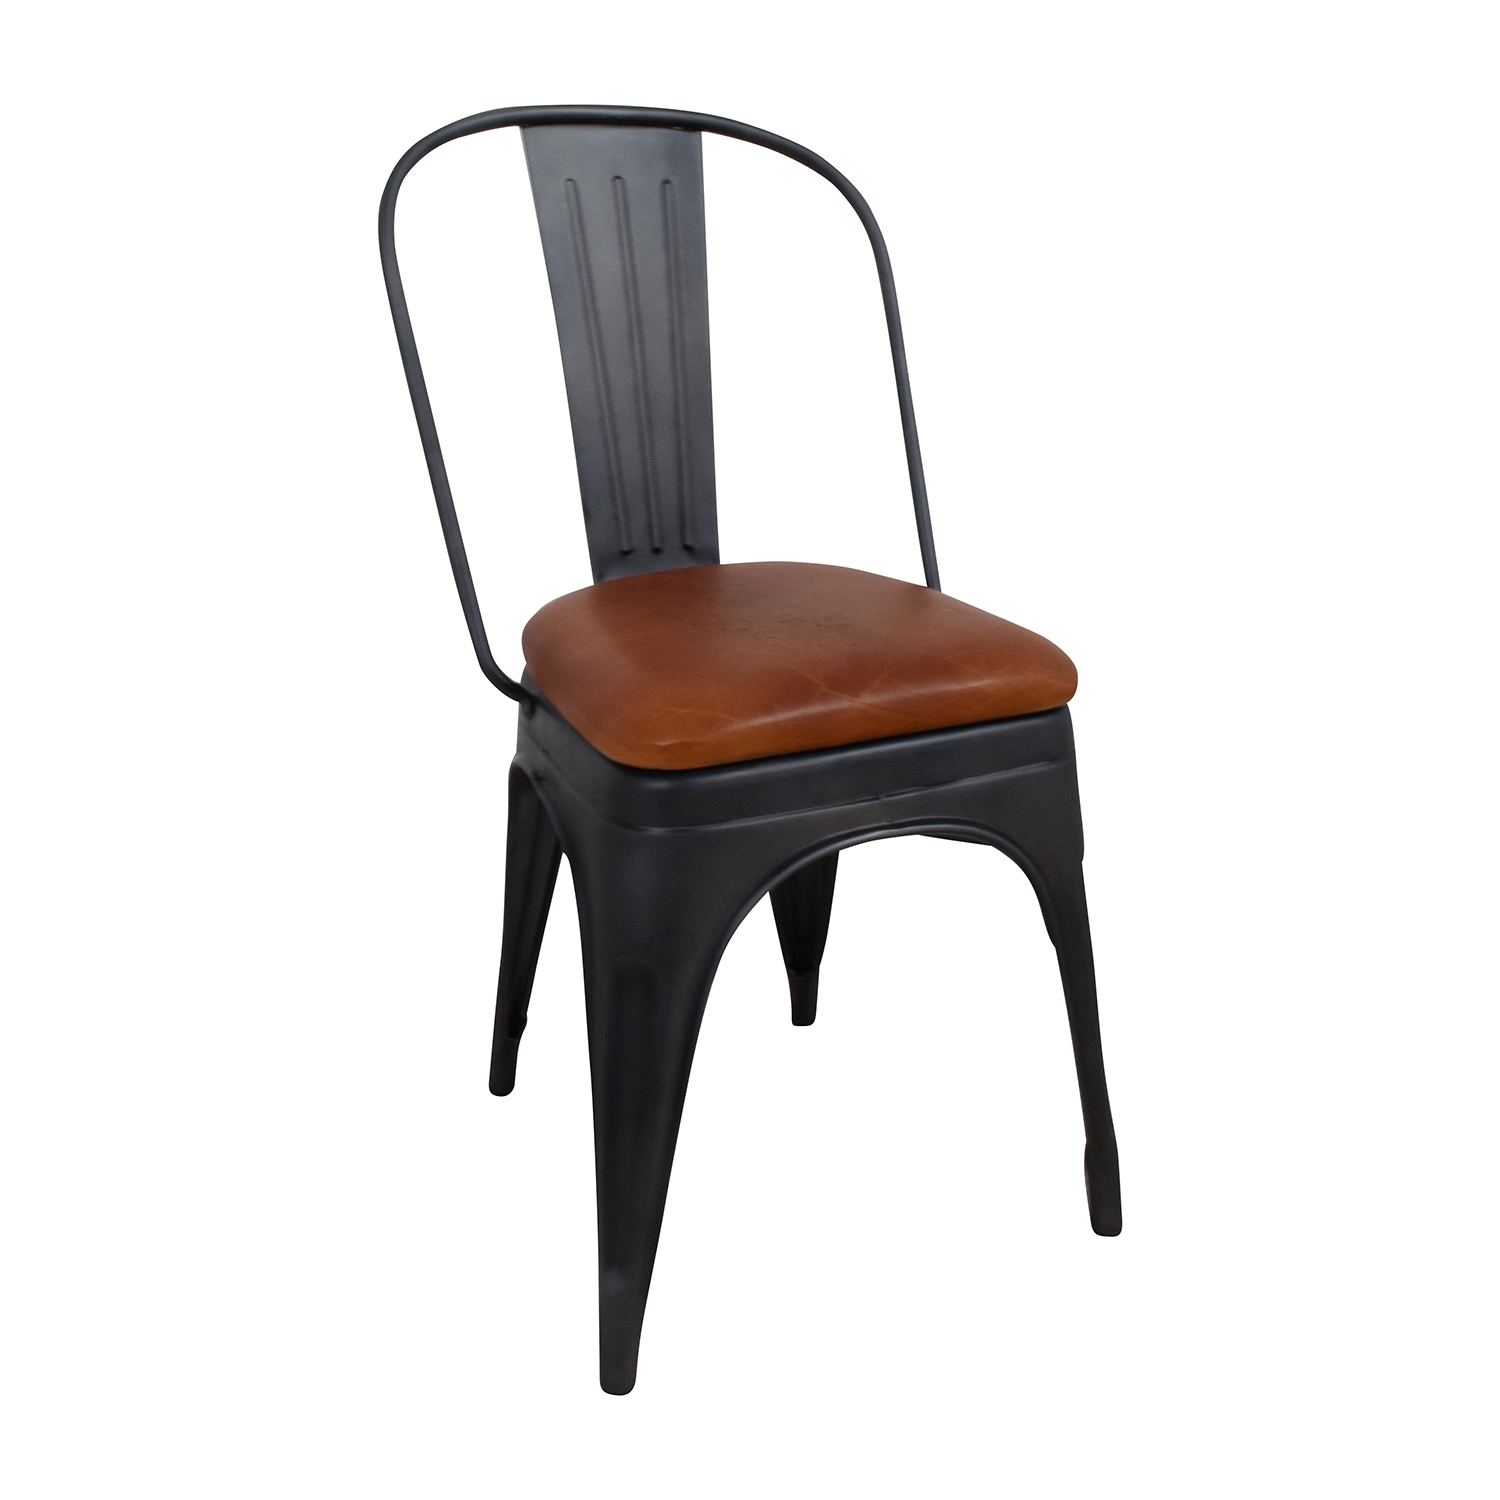 Modern Steel Desk Chair with Brown Leather Seat price